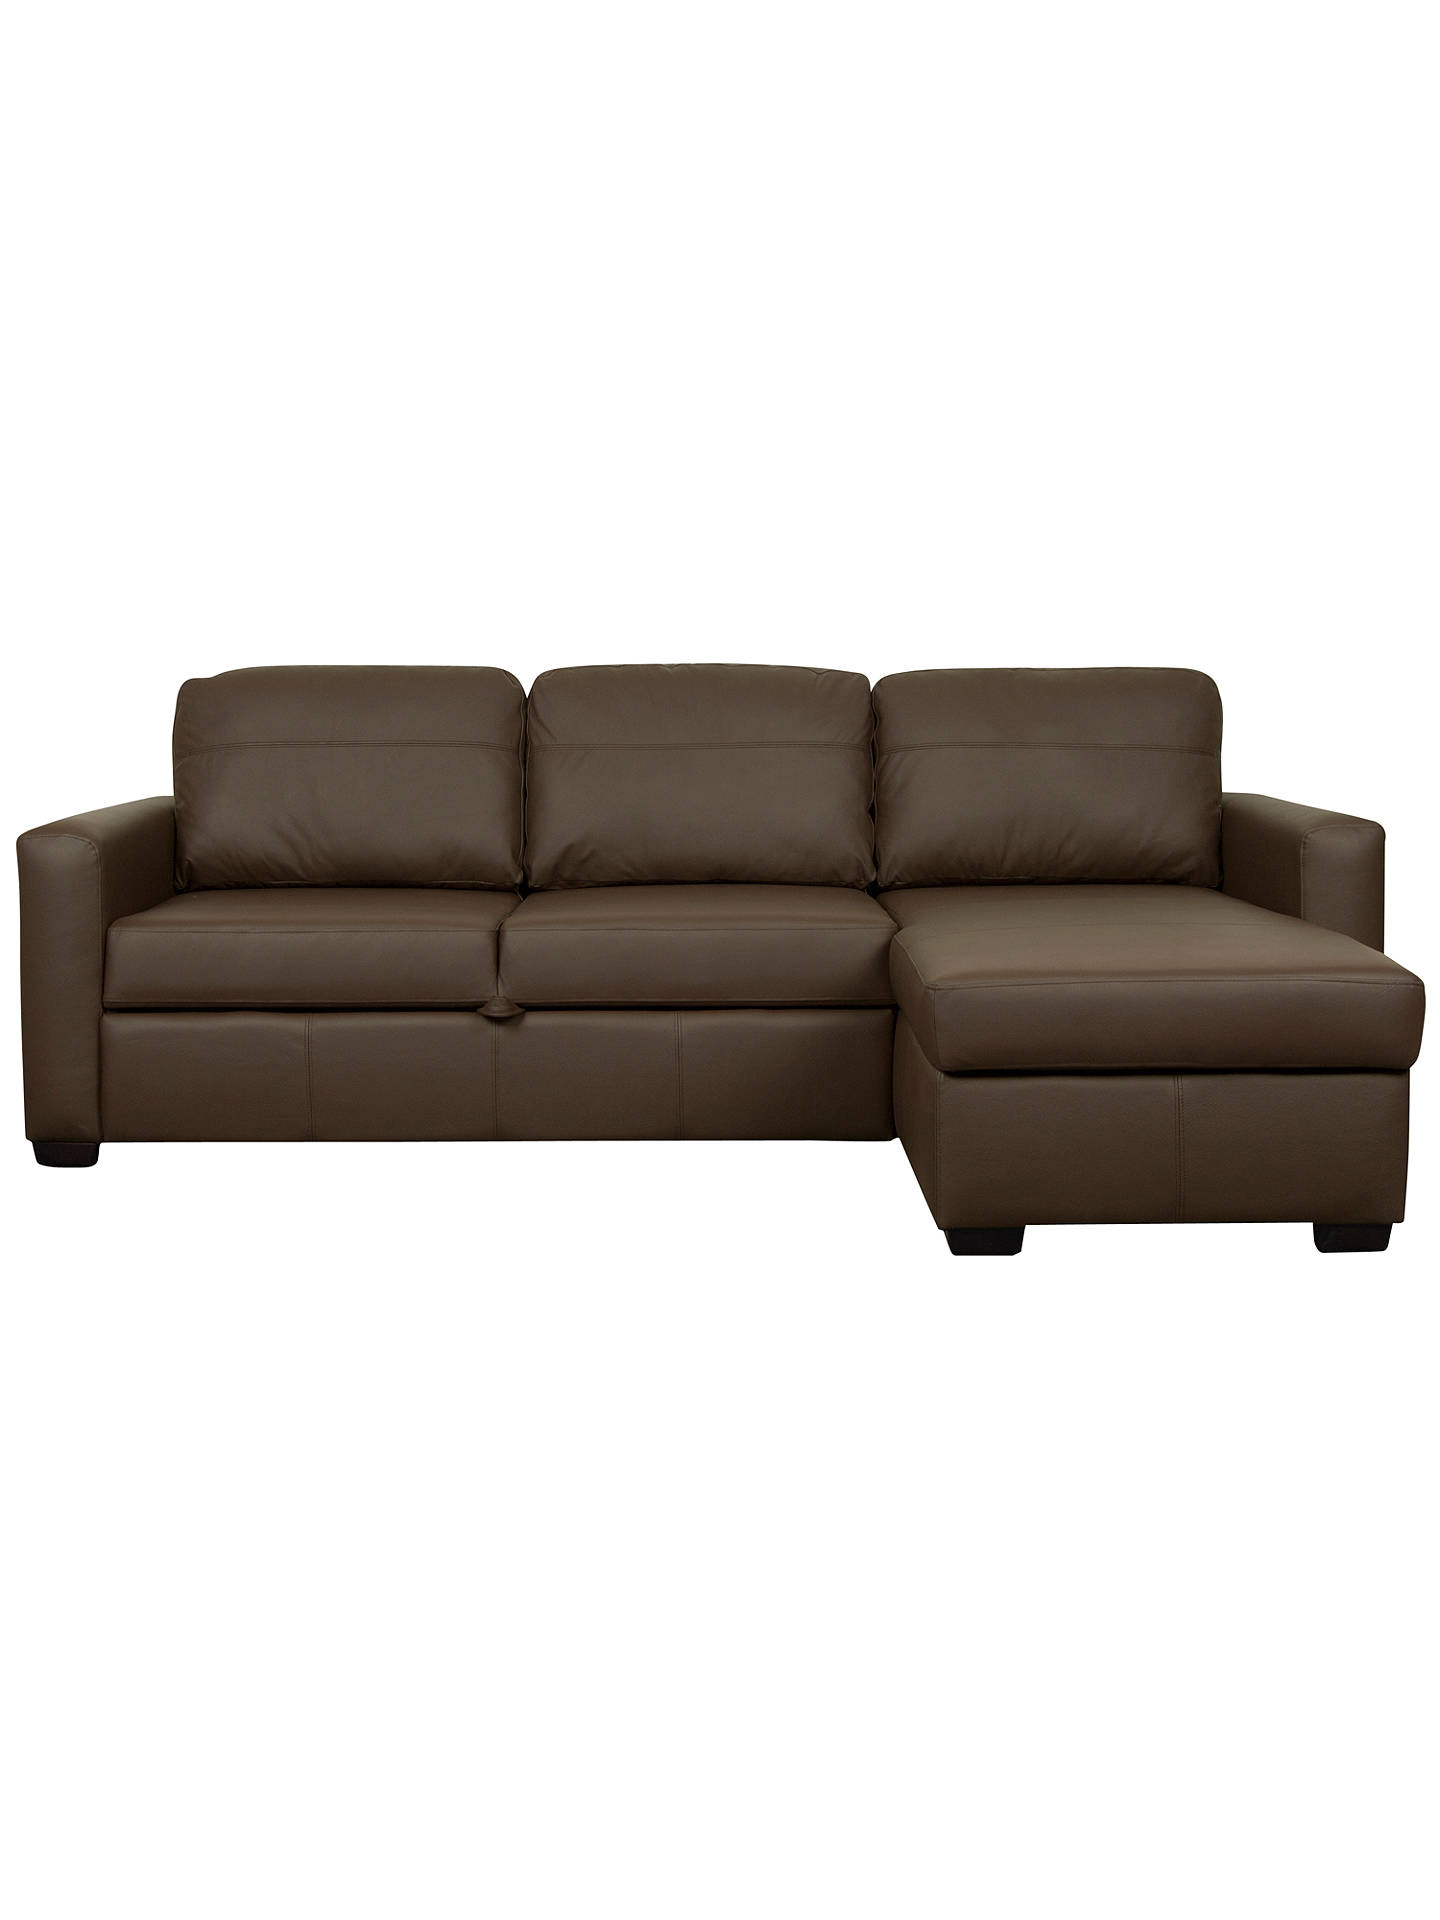 John Lewis Sacha Large Leather Sofa Bed with Foam Mattress ...